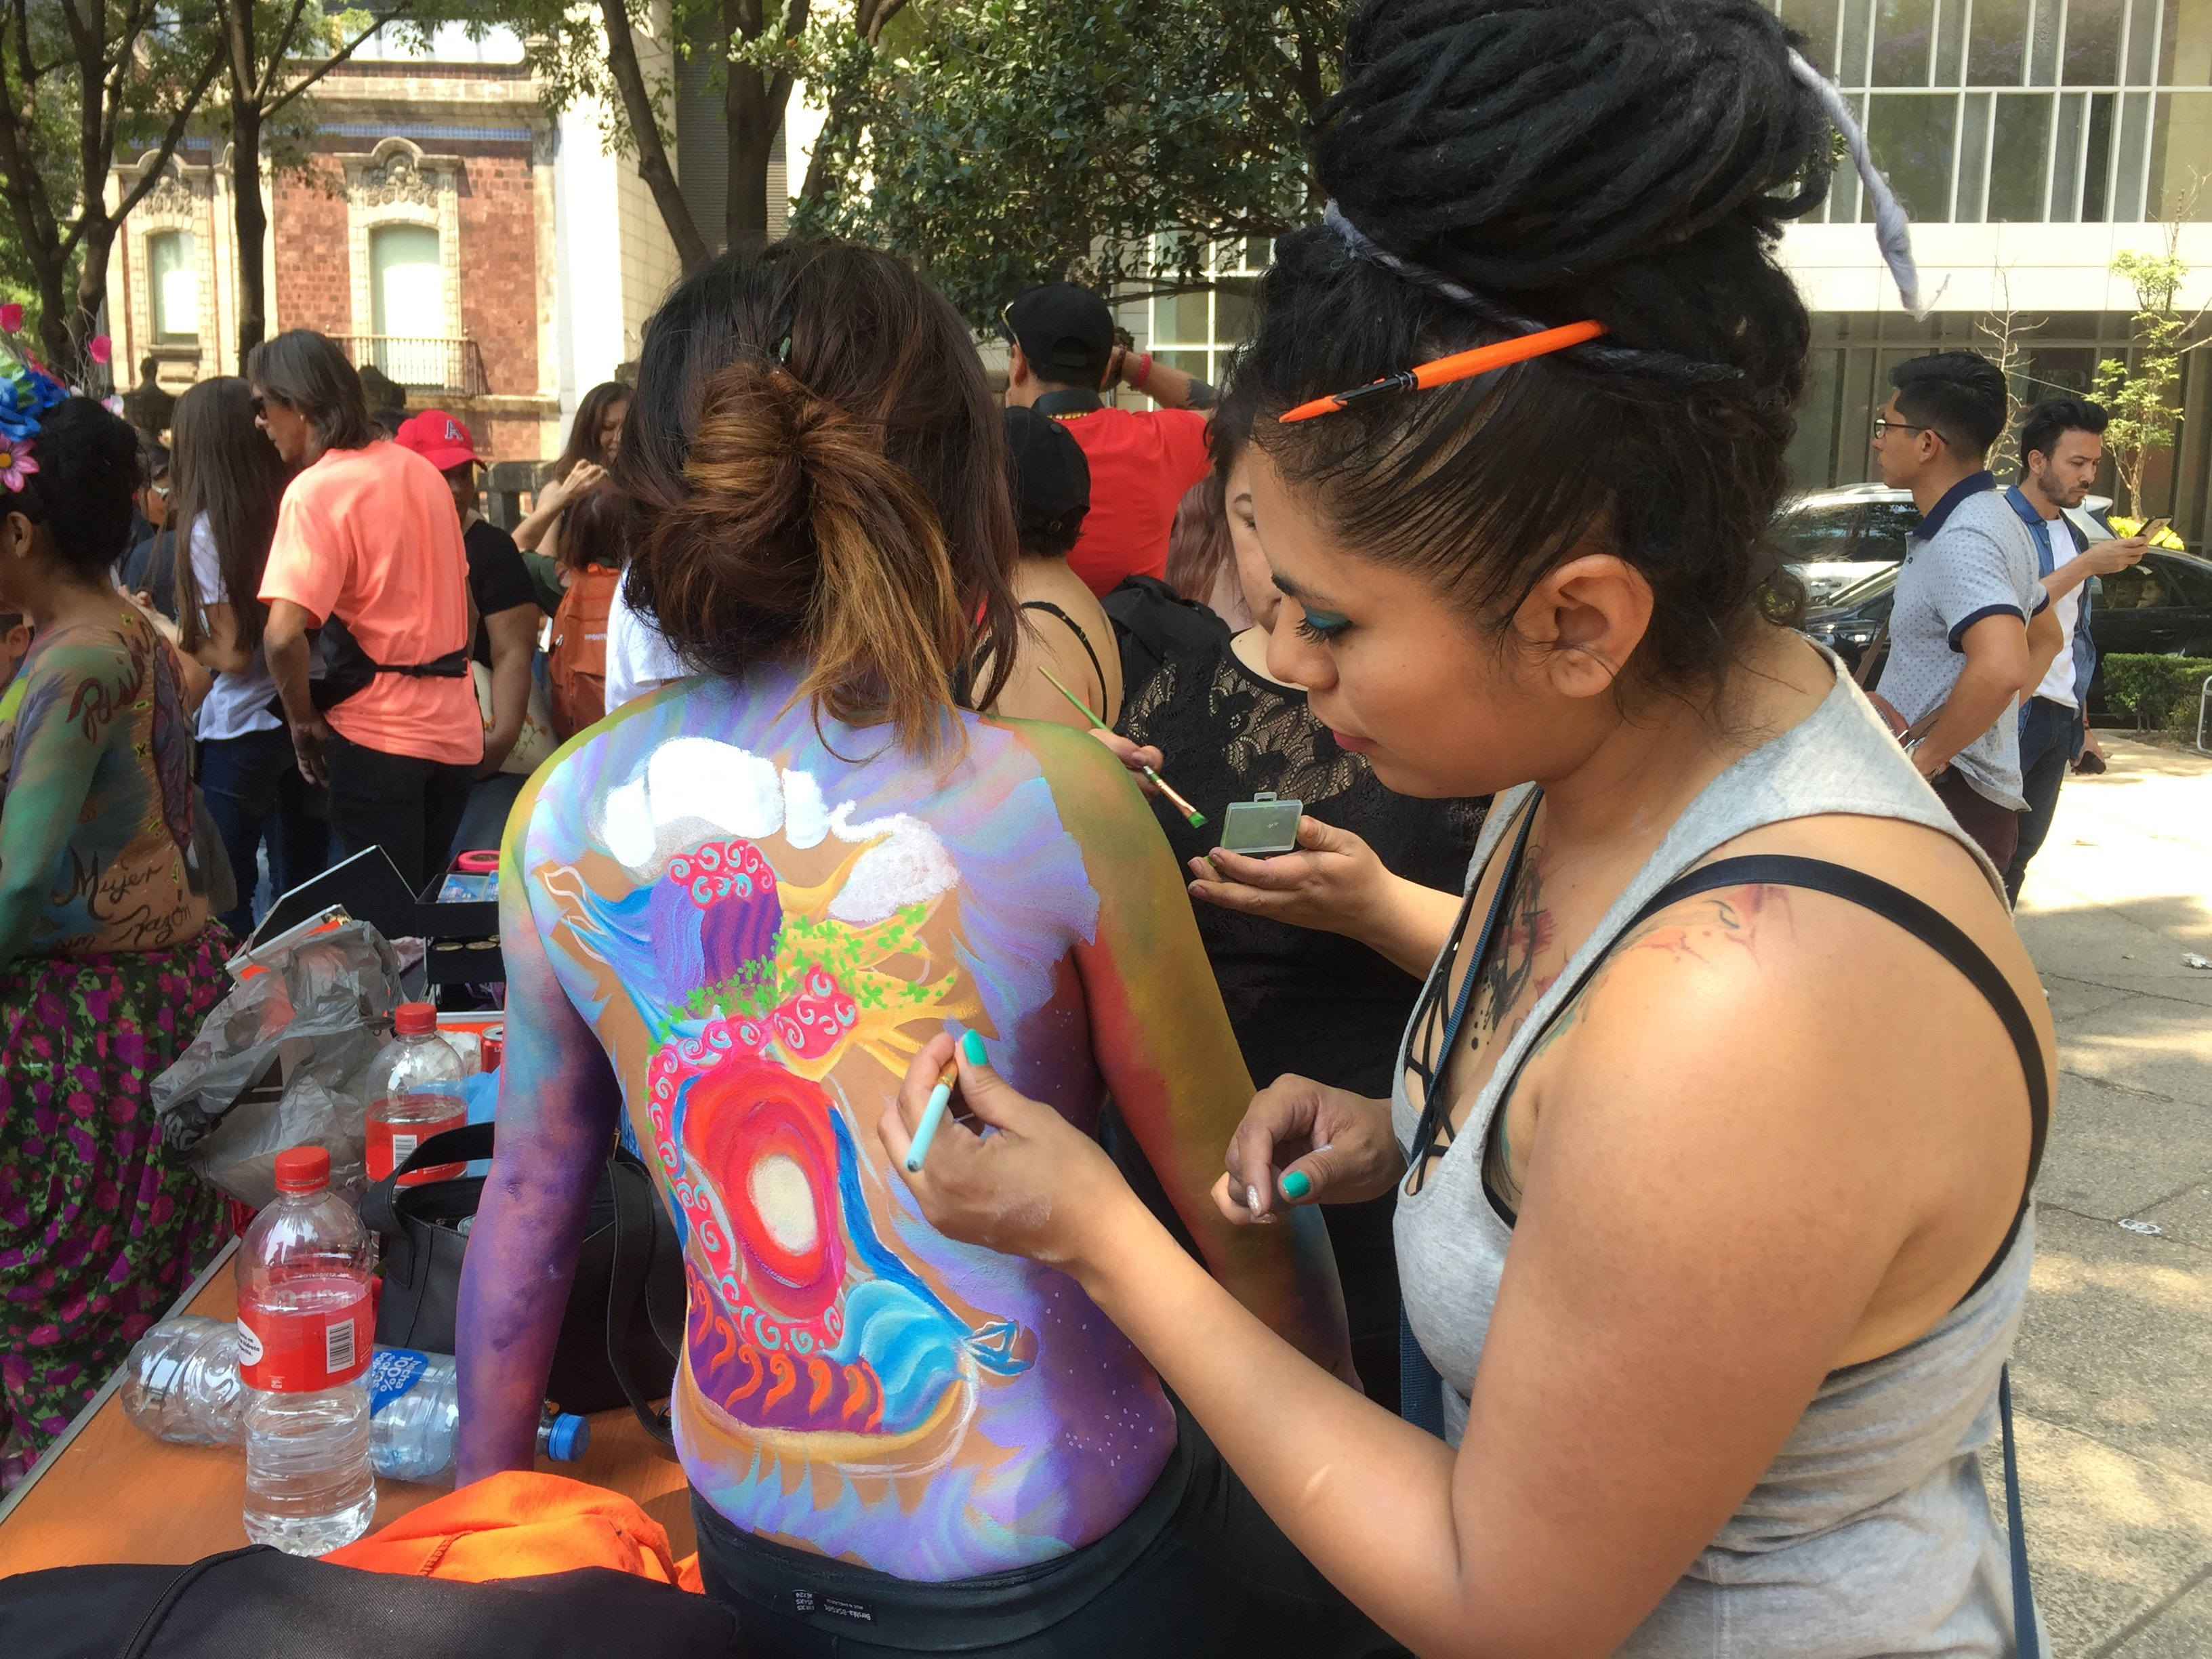 The artist said she wanted to portary peace and hope - Photo: Fretel Morales/EL UNIVERSAL in English